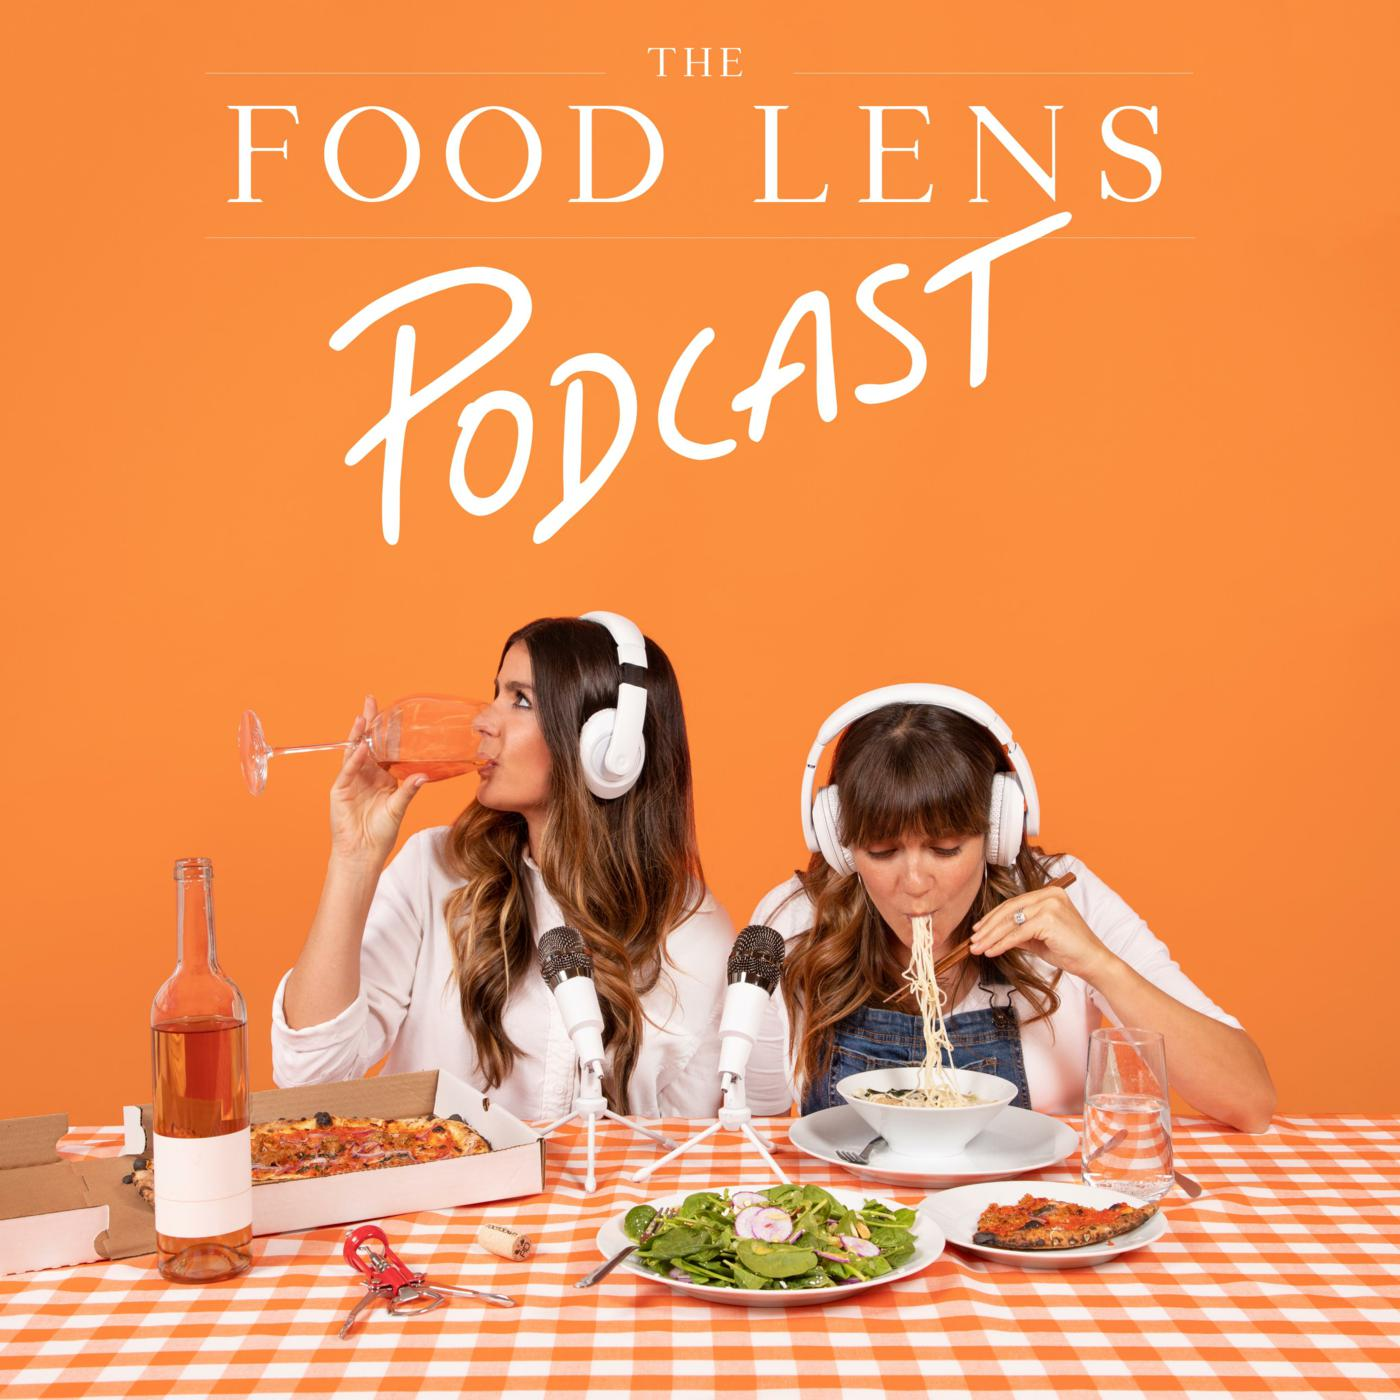 Trailer: Season Two of the Food Lens Podcast